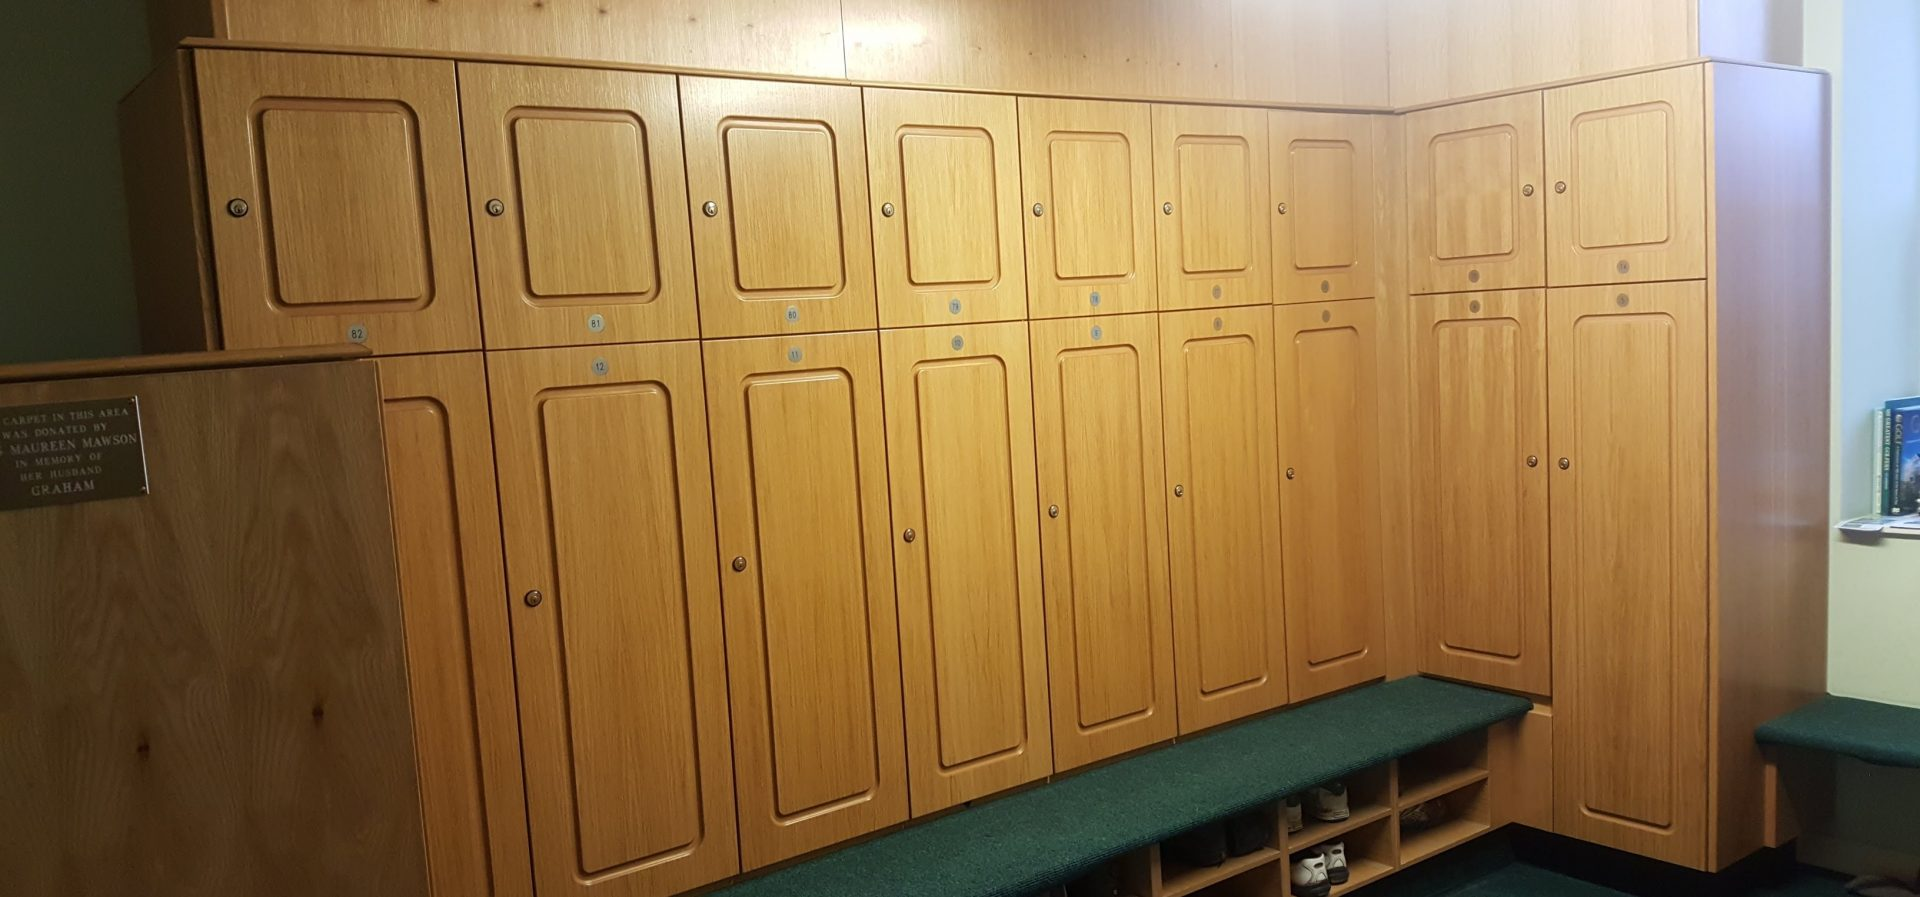 The Changing Rooms at West Bradford